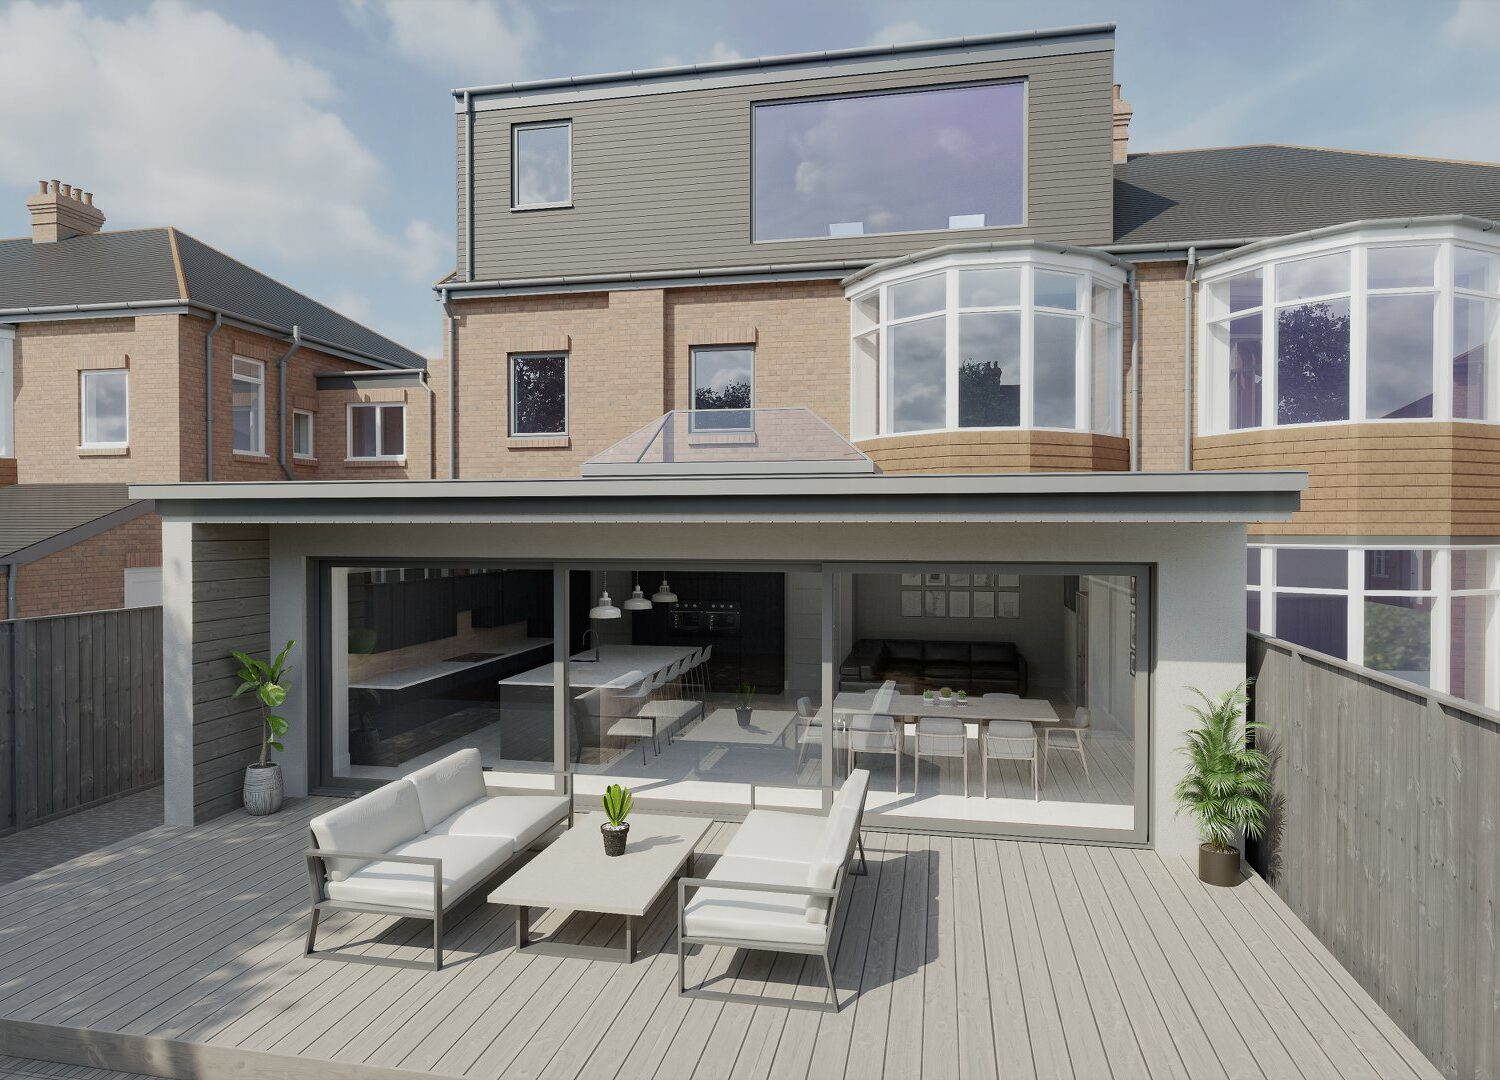 Loft conversion and single storey extension, Whitley Bay, Newcastle Upon Tyne